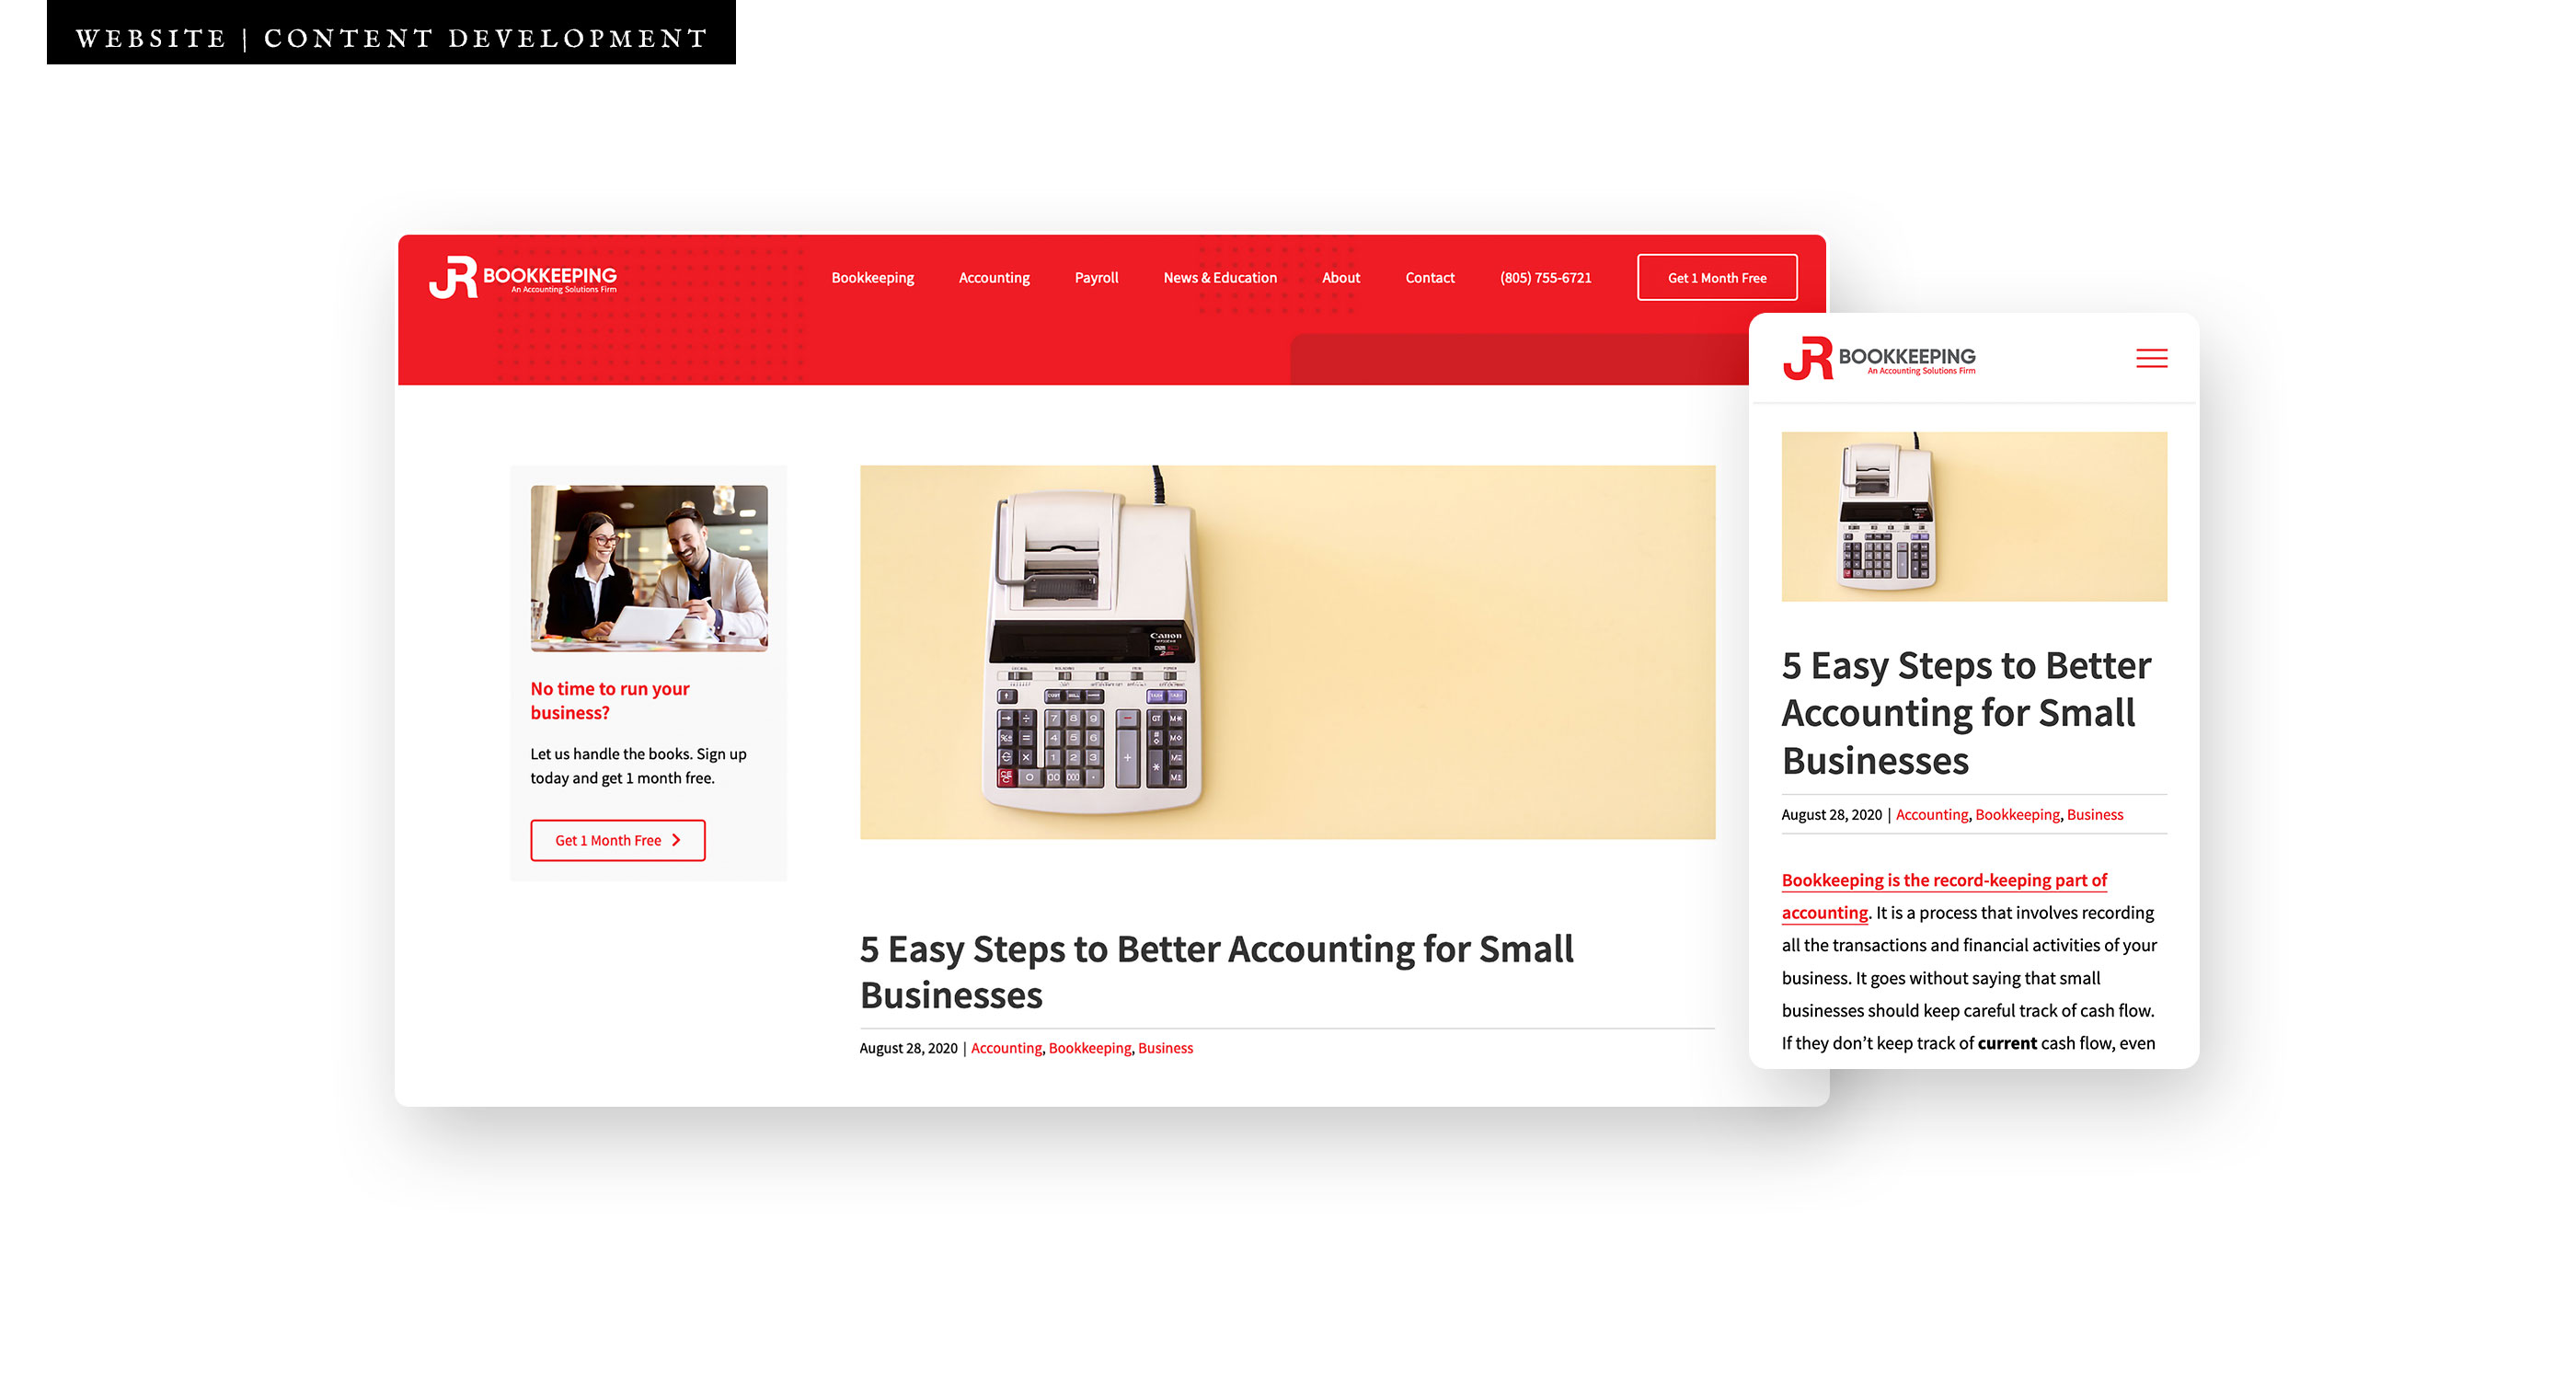 JRB Rebrand and Marketing case study 04 website content